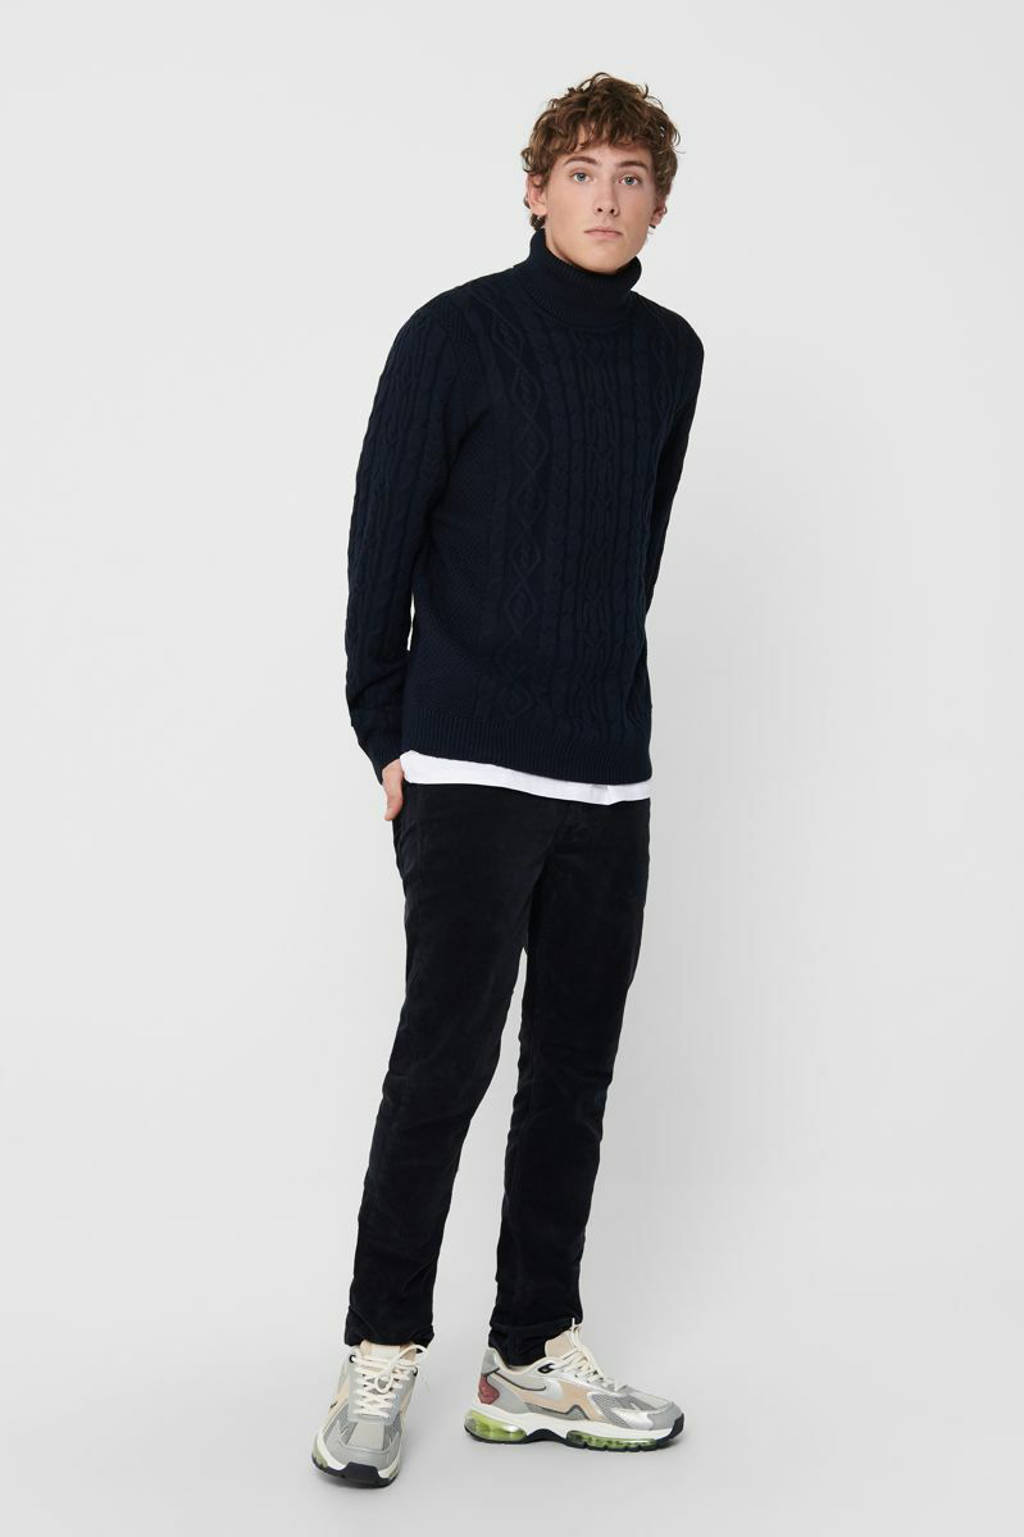 ONLY & SONS kabeltrui donkerblauw, Donkerblauw